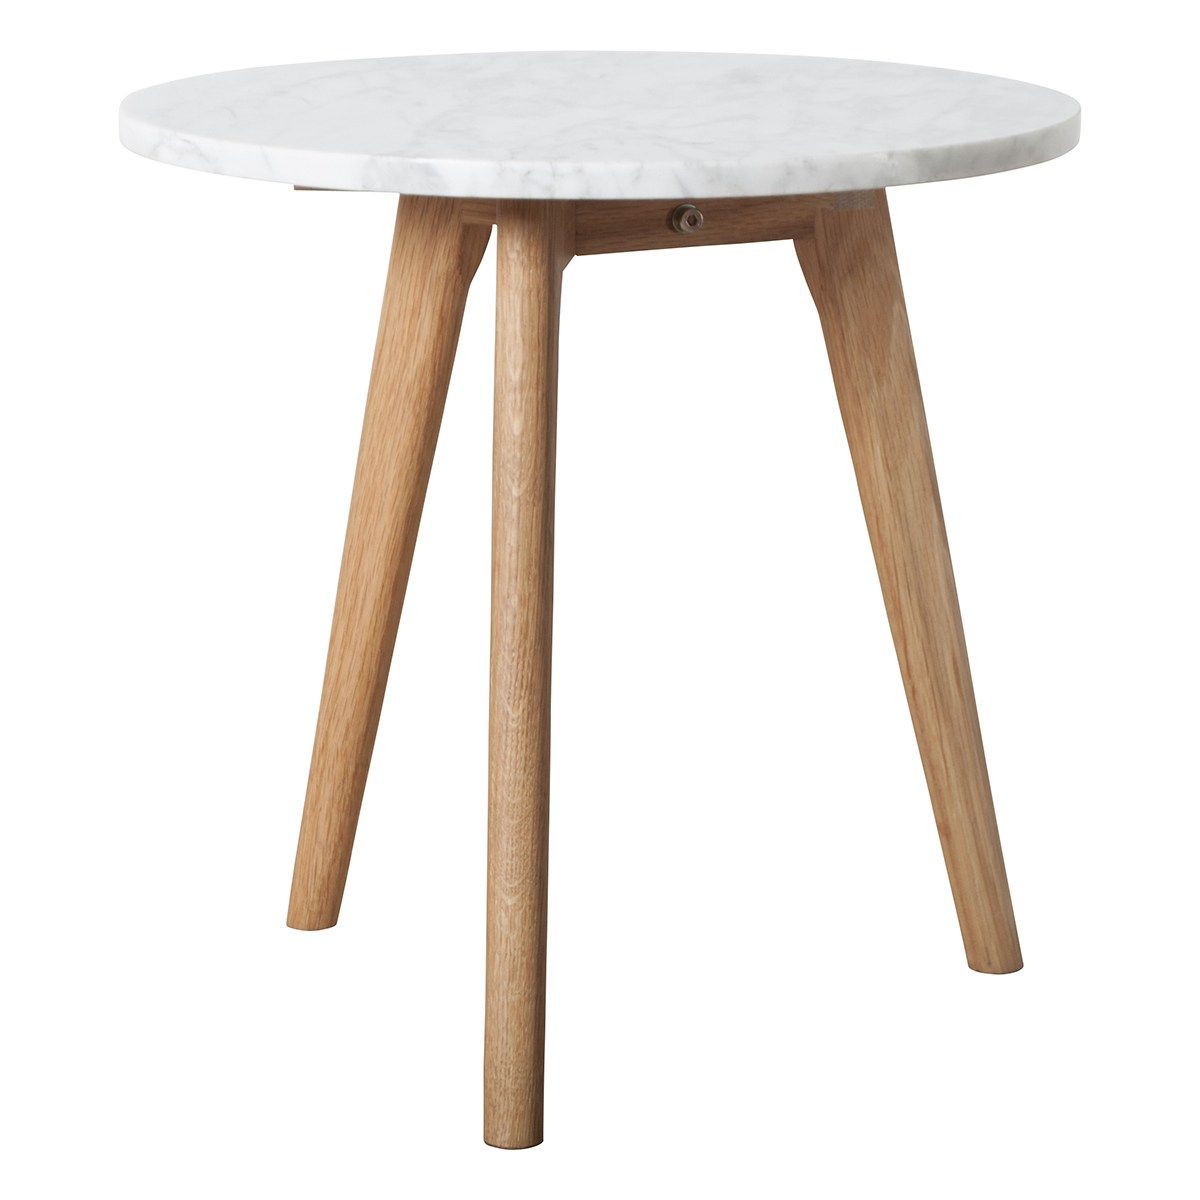 White Stone Side Table Zuiver Woo Design Marble Top Side Table Side Table Stone Top Side Table [ 1200 x 1200 Pixel ]